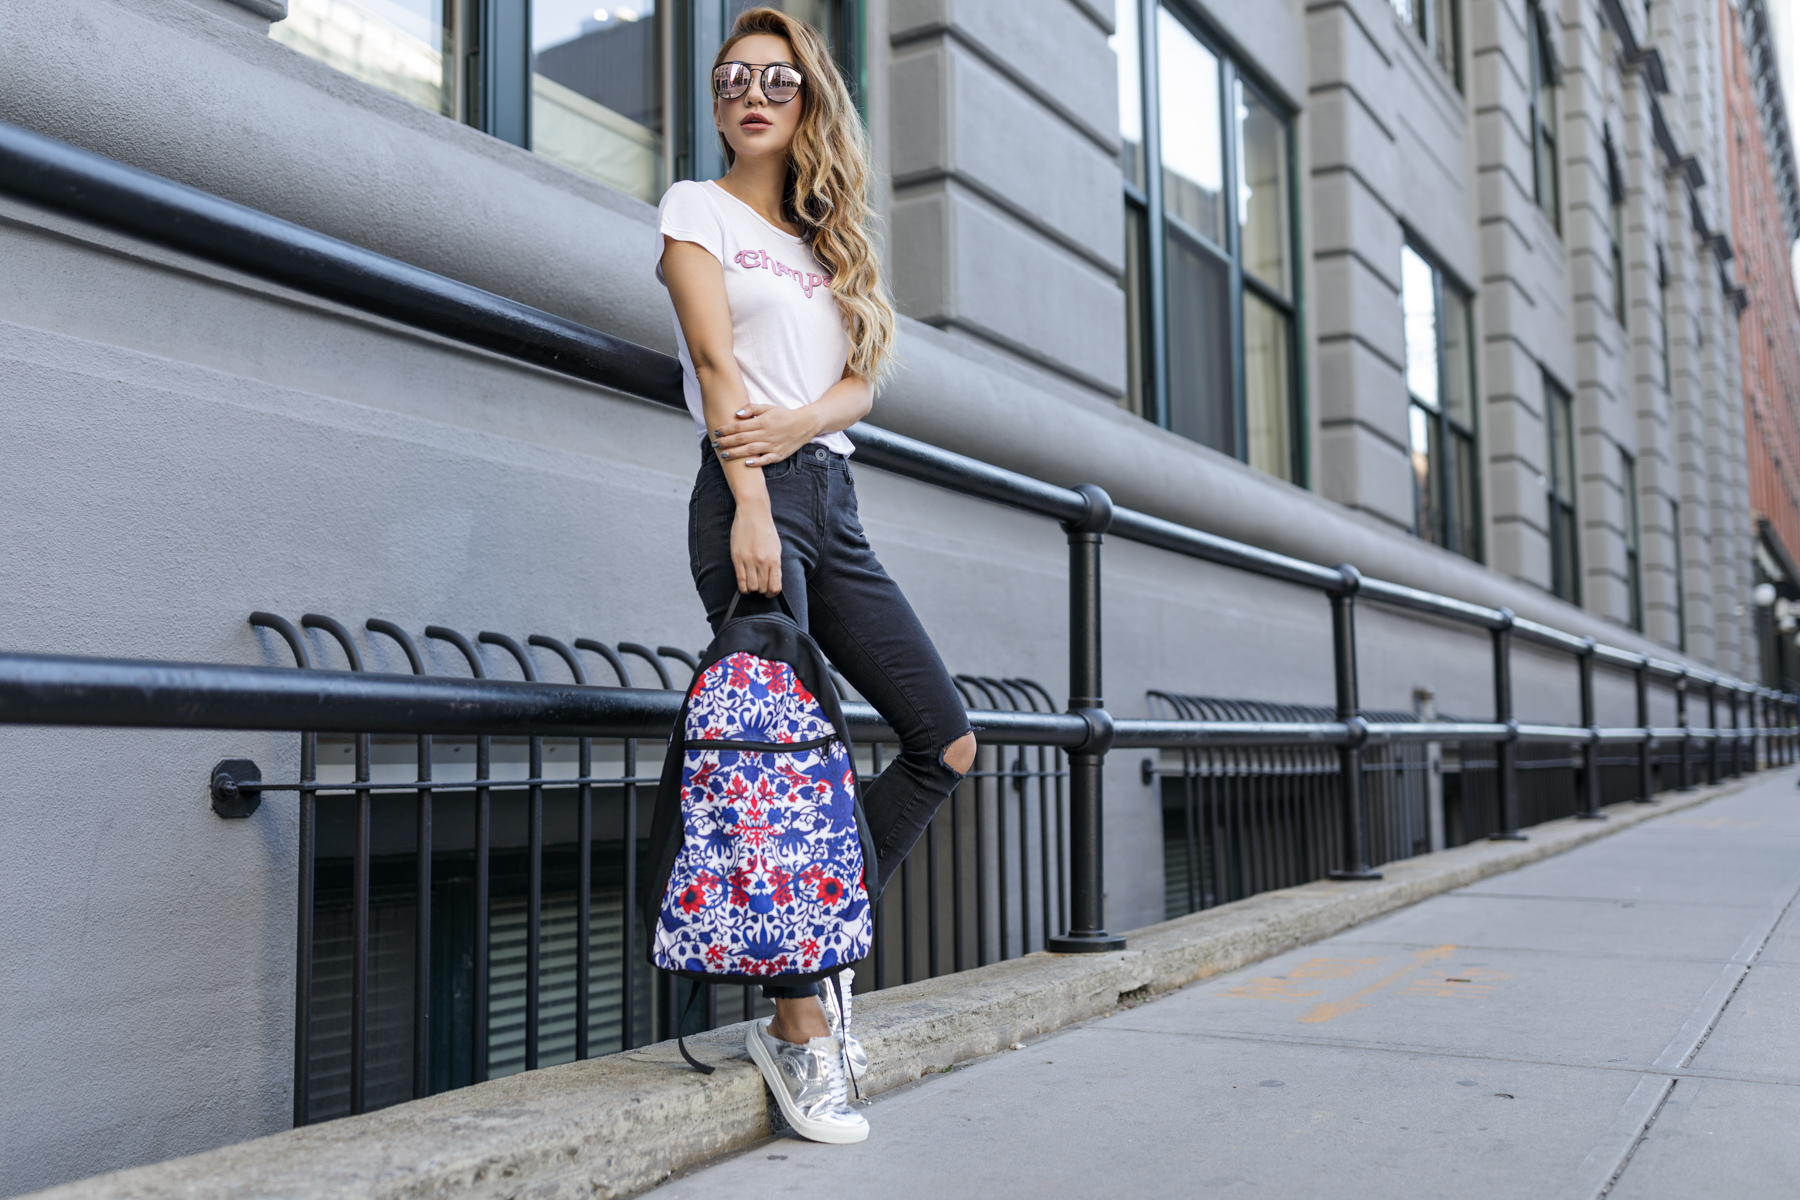 eBay, Backpack, Exclusive, Floral Paisley Print, Rachel Zoe, NOTJESSFASHION, NYC, Top Fashion Blogger, Lifestyle Blogger, Travel Blogger